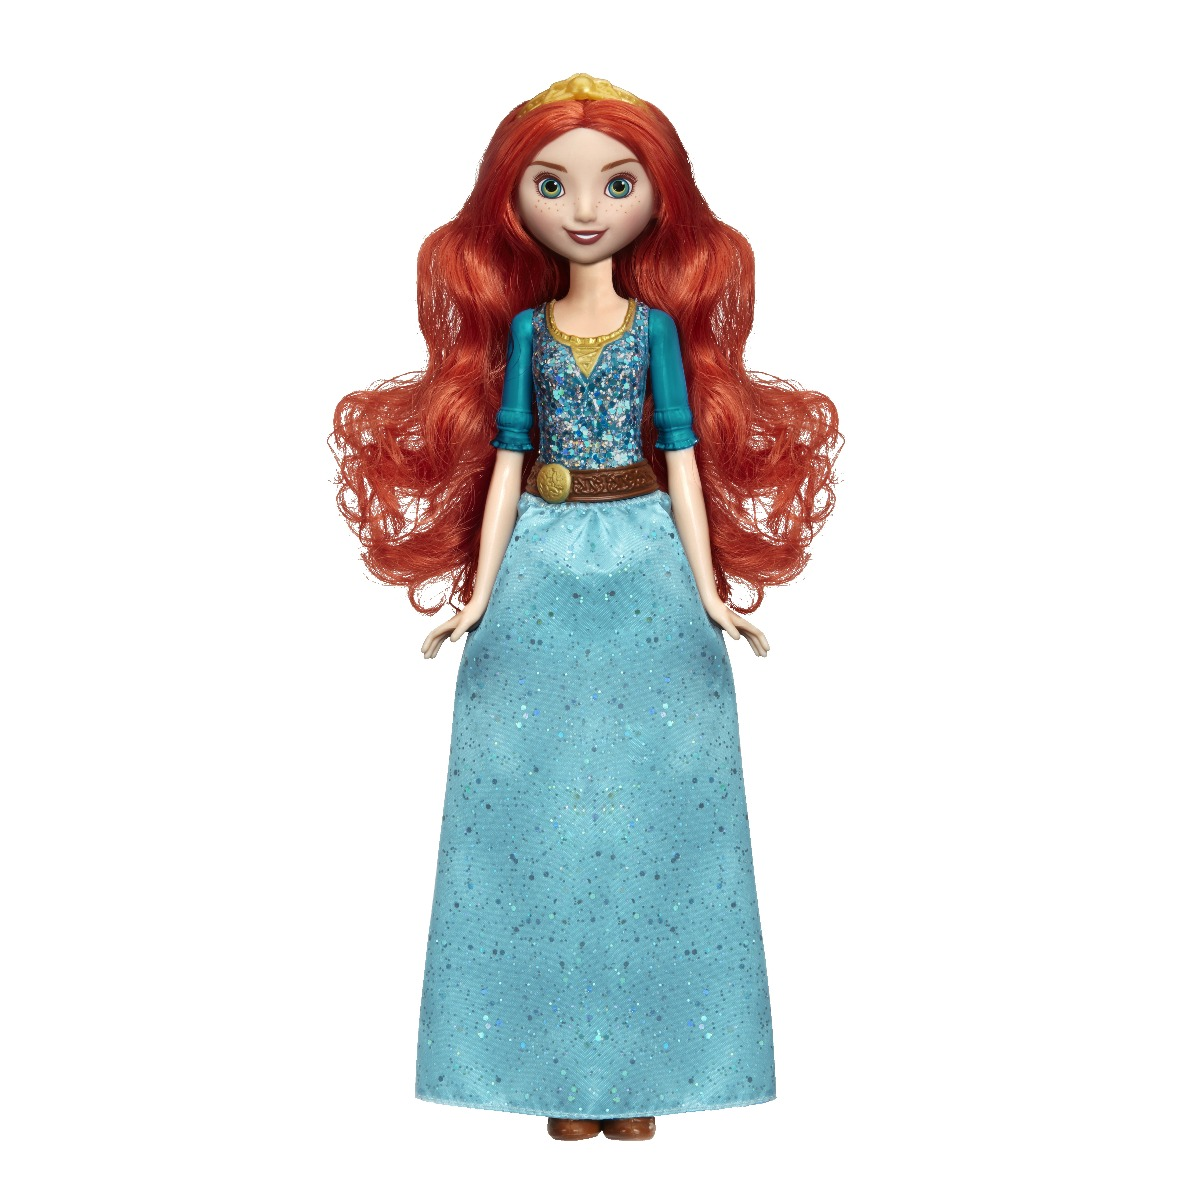 Papusa Disney Princess - Shimmer Fashion - Merida